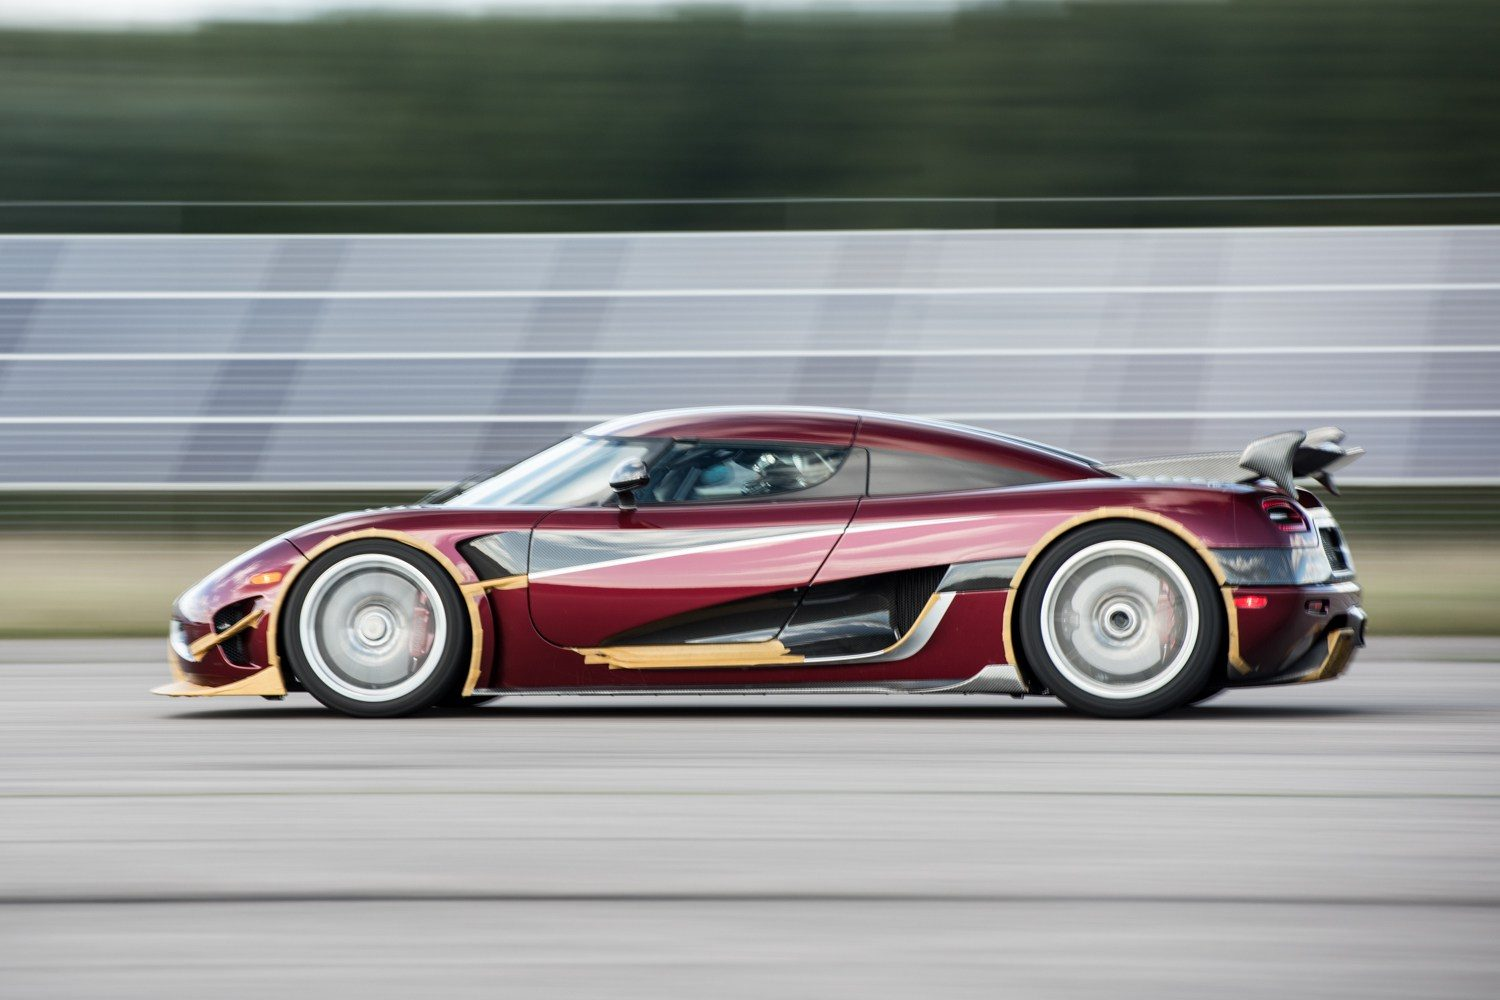 Koenigsegg's Agera RS is the world's fastest production car